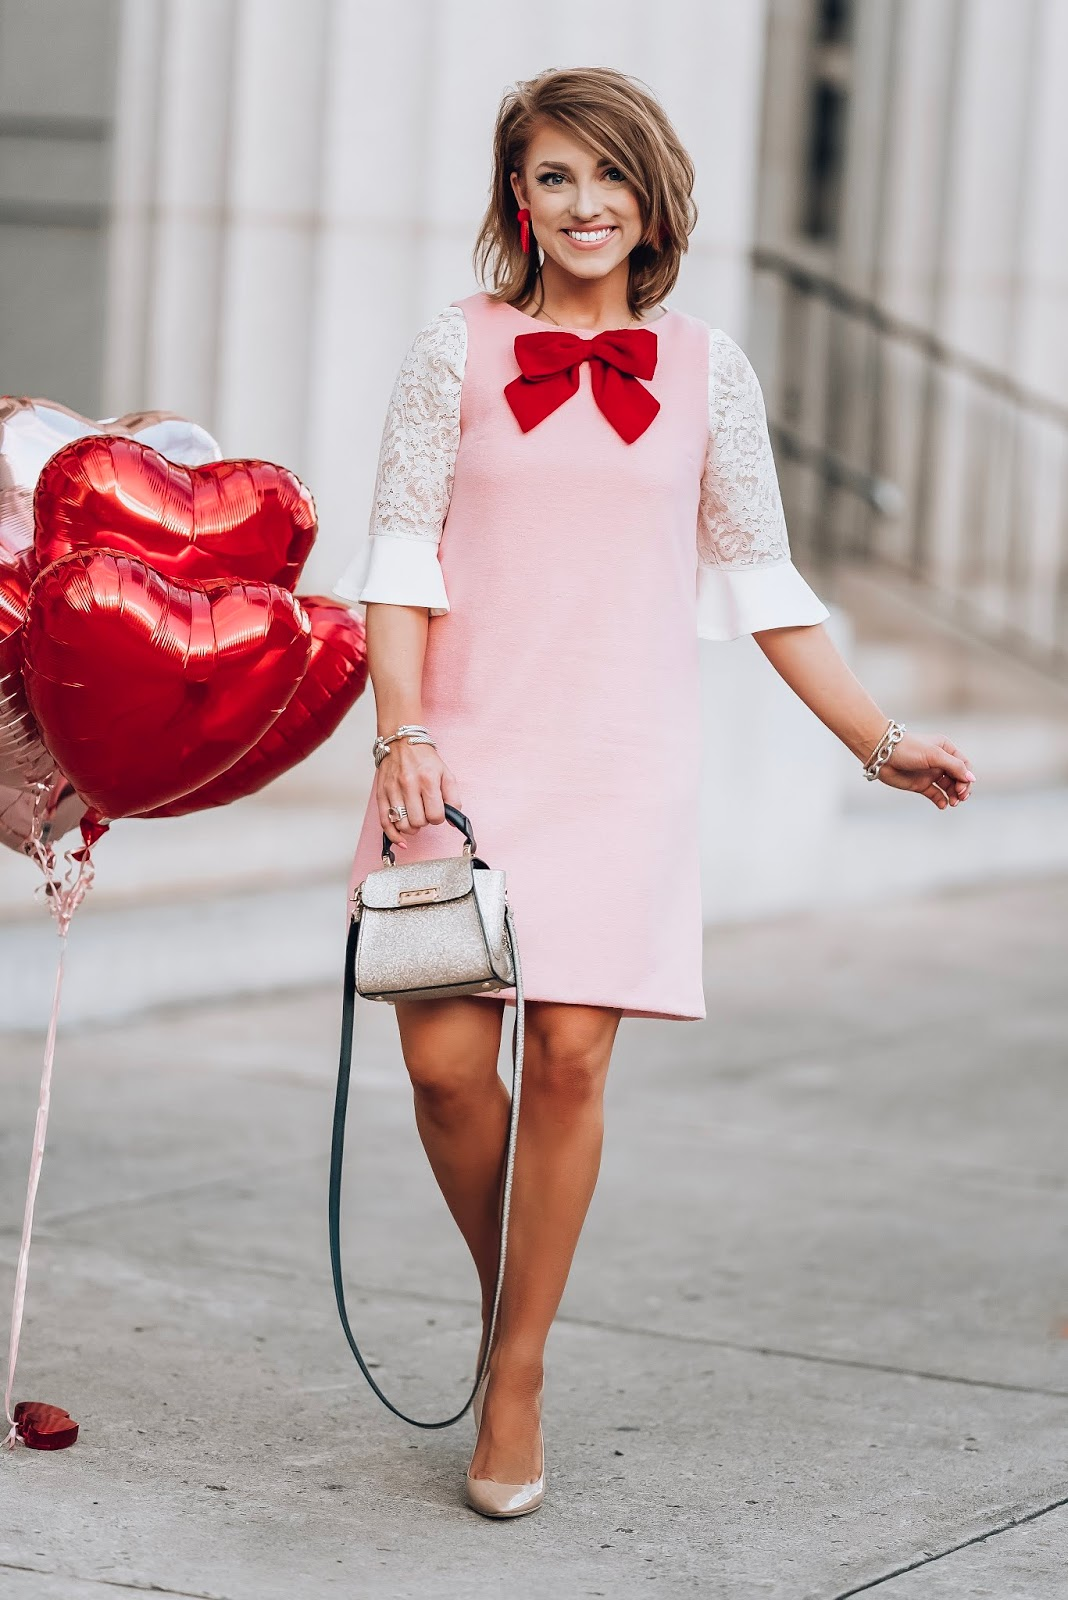 The Perfect Dress For Valentine's Day - Pink & Red Bow Dress - Something Delightful Blog #valentinesday #valentinesdaystyle #kjp #pinkdress #bow #valentine #galentinesday #winterstyle #hearts